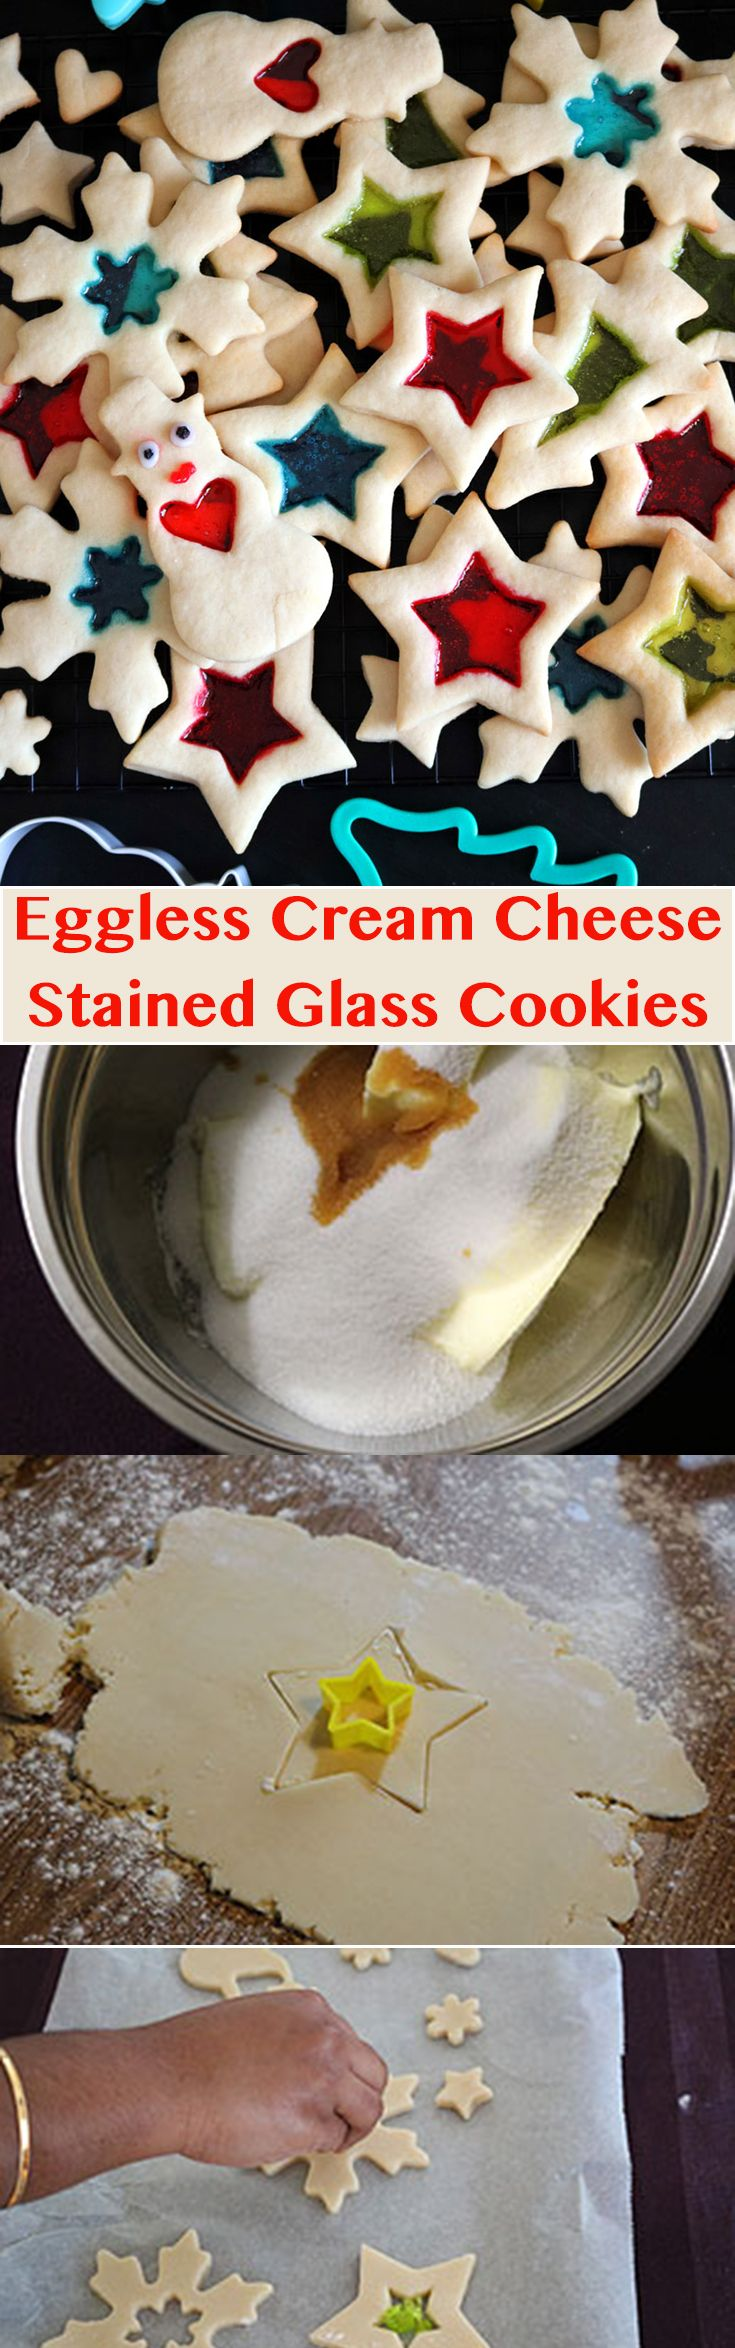 Eggless Cream Cheese Stained-glass Sugar Cookie is the perfect cookie for an anytime holiday mood. It is both easy to make as well as fun to eat later on.